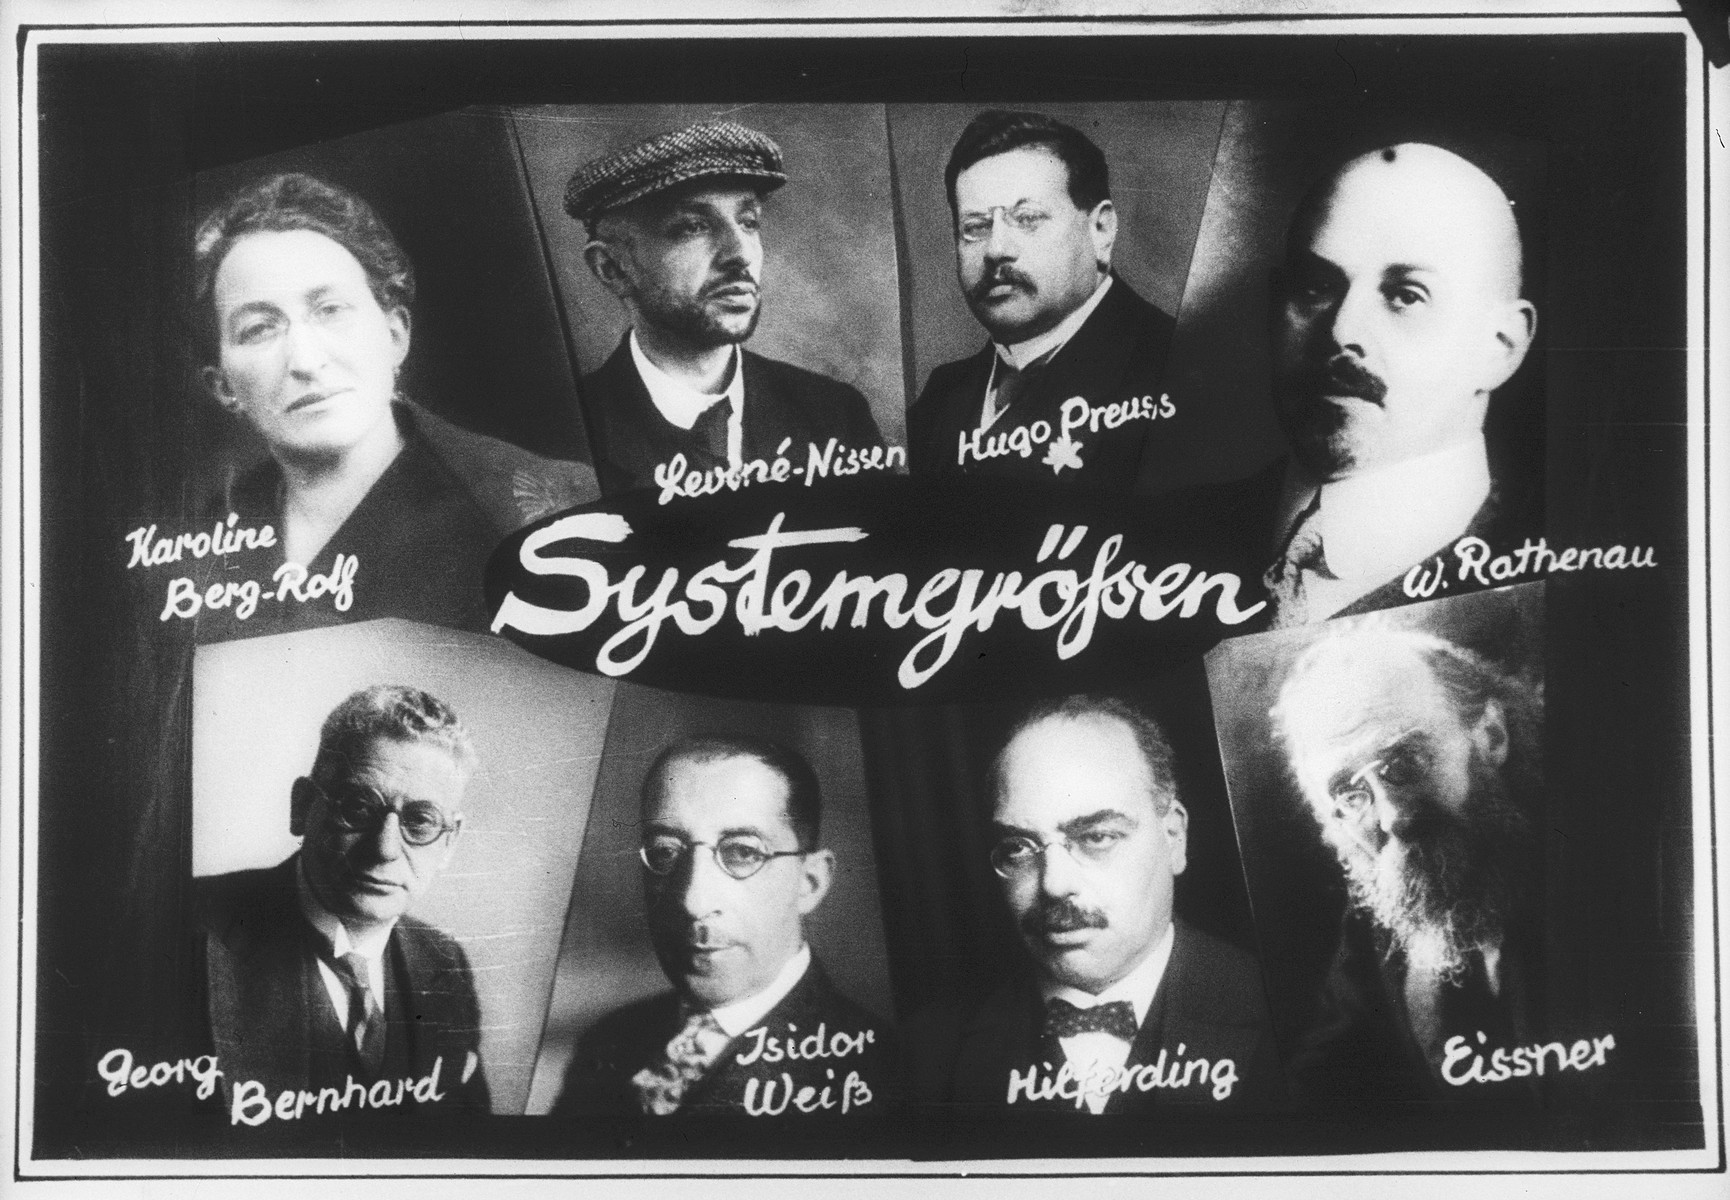 "Propaganda slide entitled ""Leading Figures of the System"" [Systemgroessen], featuring portraits of six prominent Jewish political and cultural figures in Weimar Germany: Karolina Berg-Rolf, Eugen Levine-Nissen, Hugo Preuss, Walther Rathenau, Georg Bernhard, Isidore Weiss, Rudolf Hilferding and Kurt Eisner."